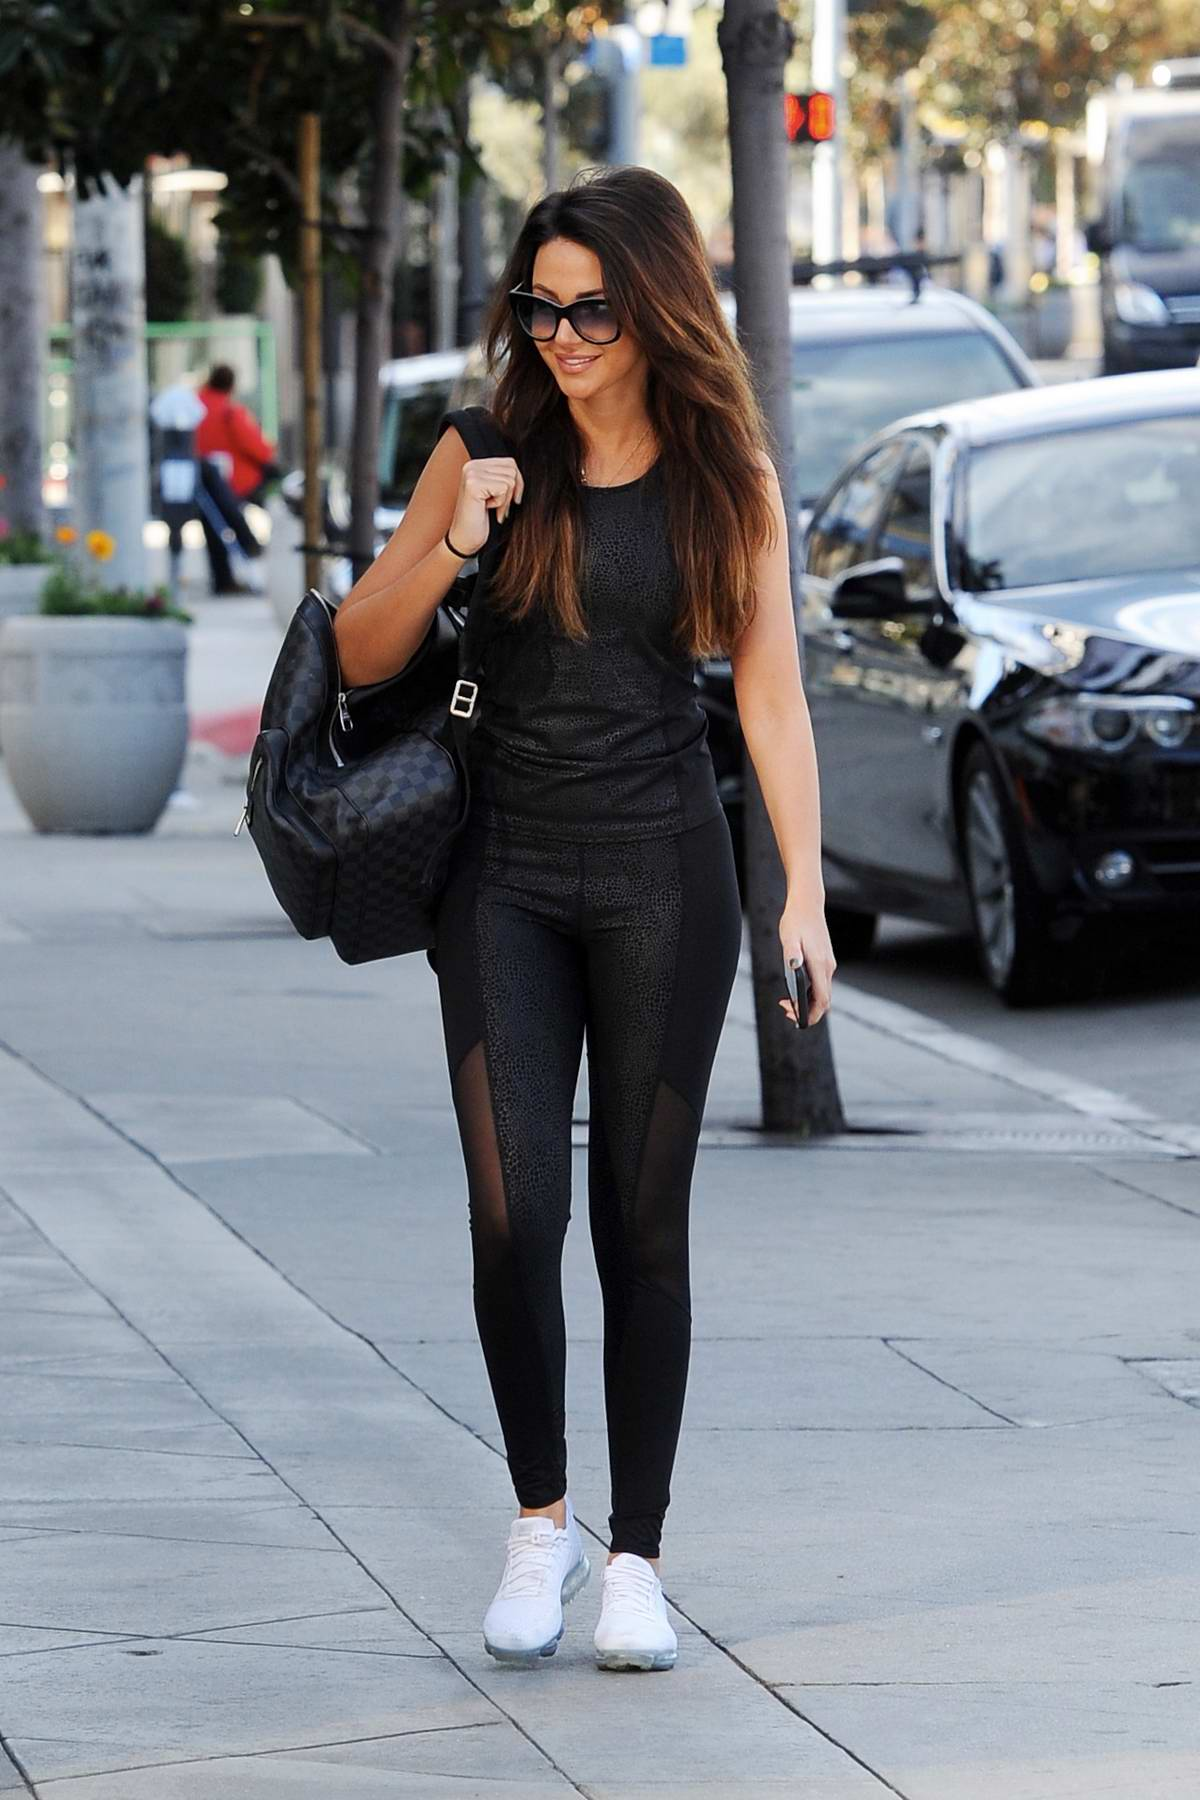 35c3c99d77137 Michelle Keegan sports all black workout gear as she heads to the Equinox  gym in Los Angeles